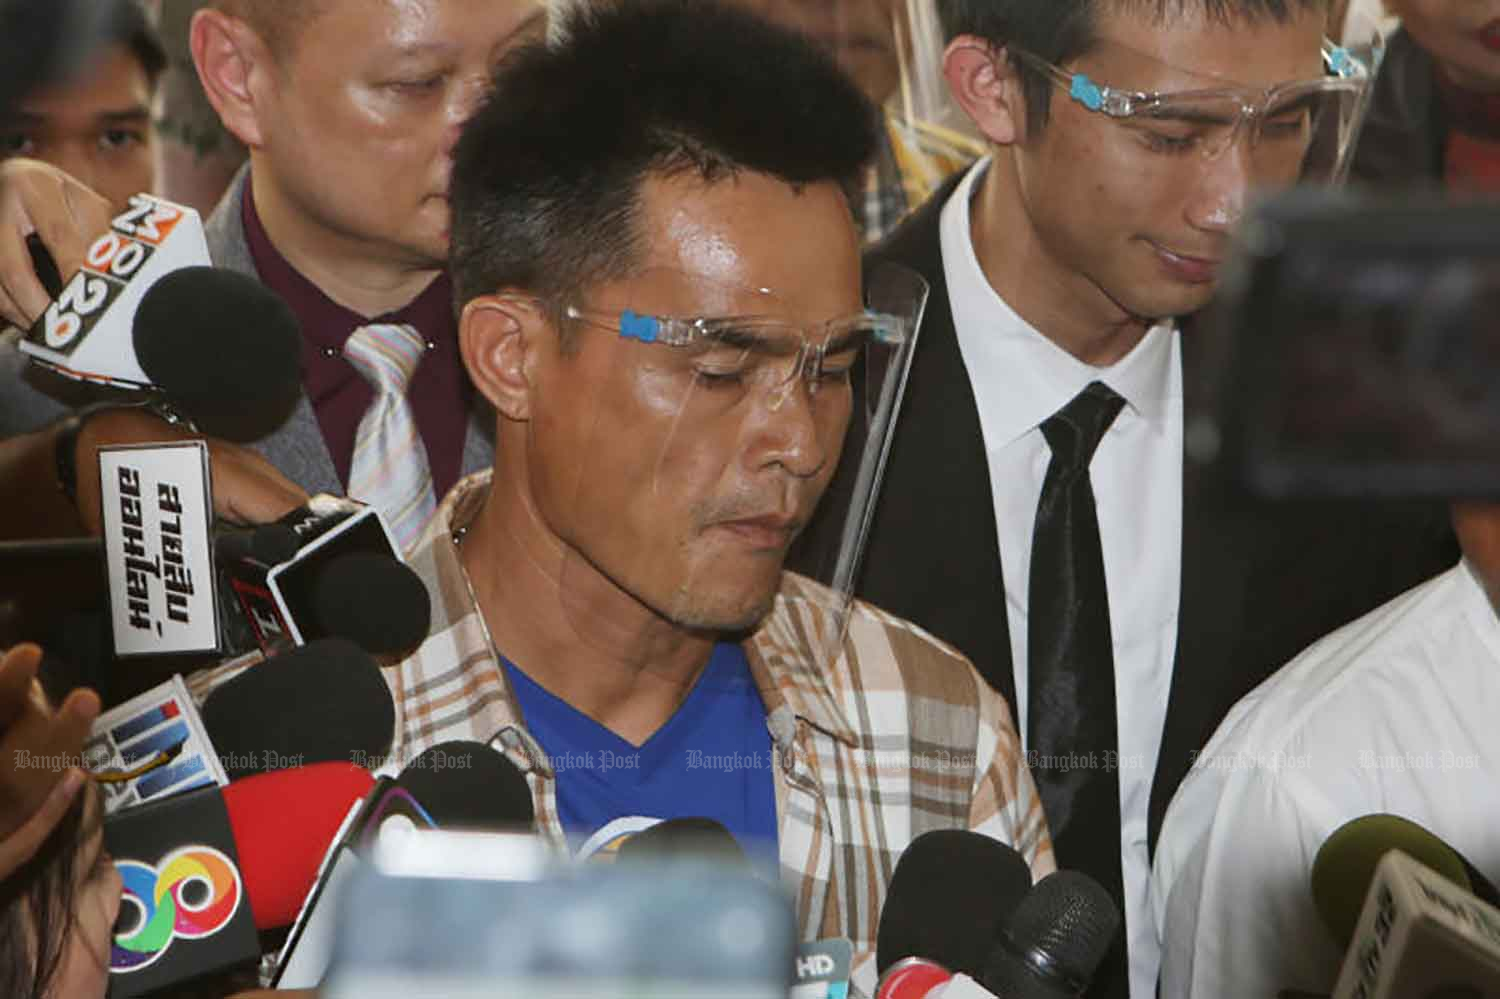 Chaiphol Wipha, 44, arrives at the Royal Thai Police Office in Bangkok on Oct 2, 2020, to hear a press conference on investigation progress in the death of Nong Chompoo. (Photo: Apichit Jinakul)